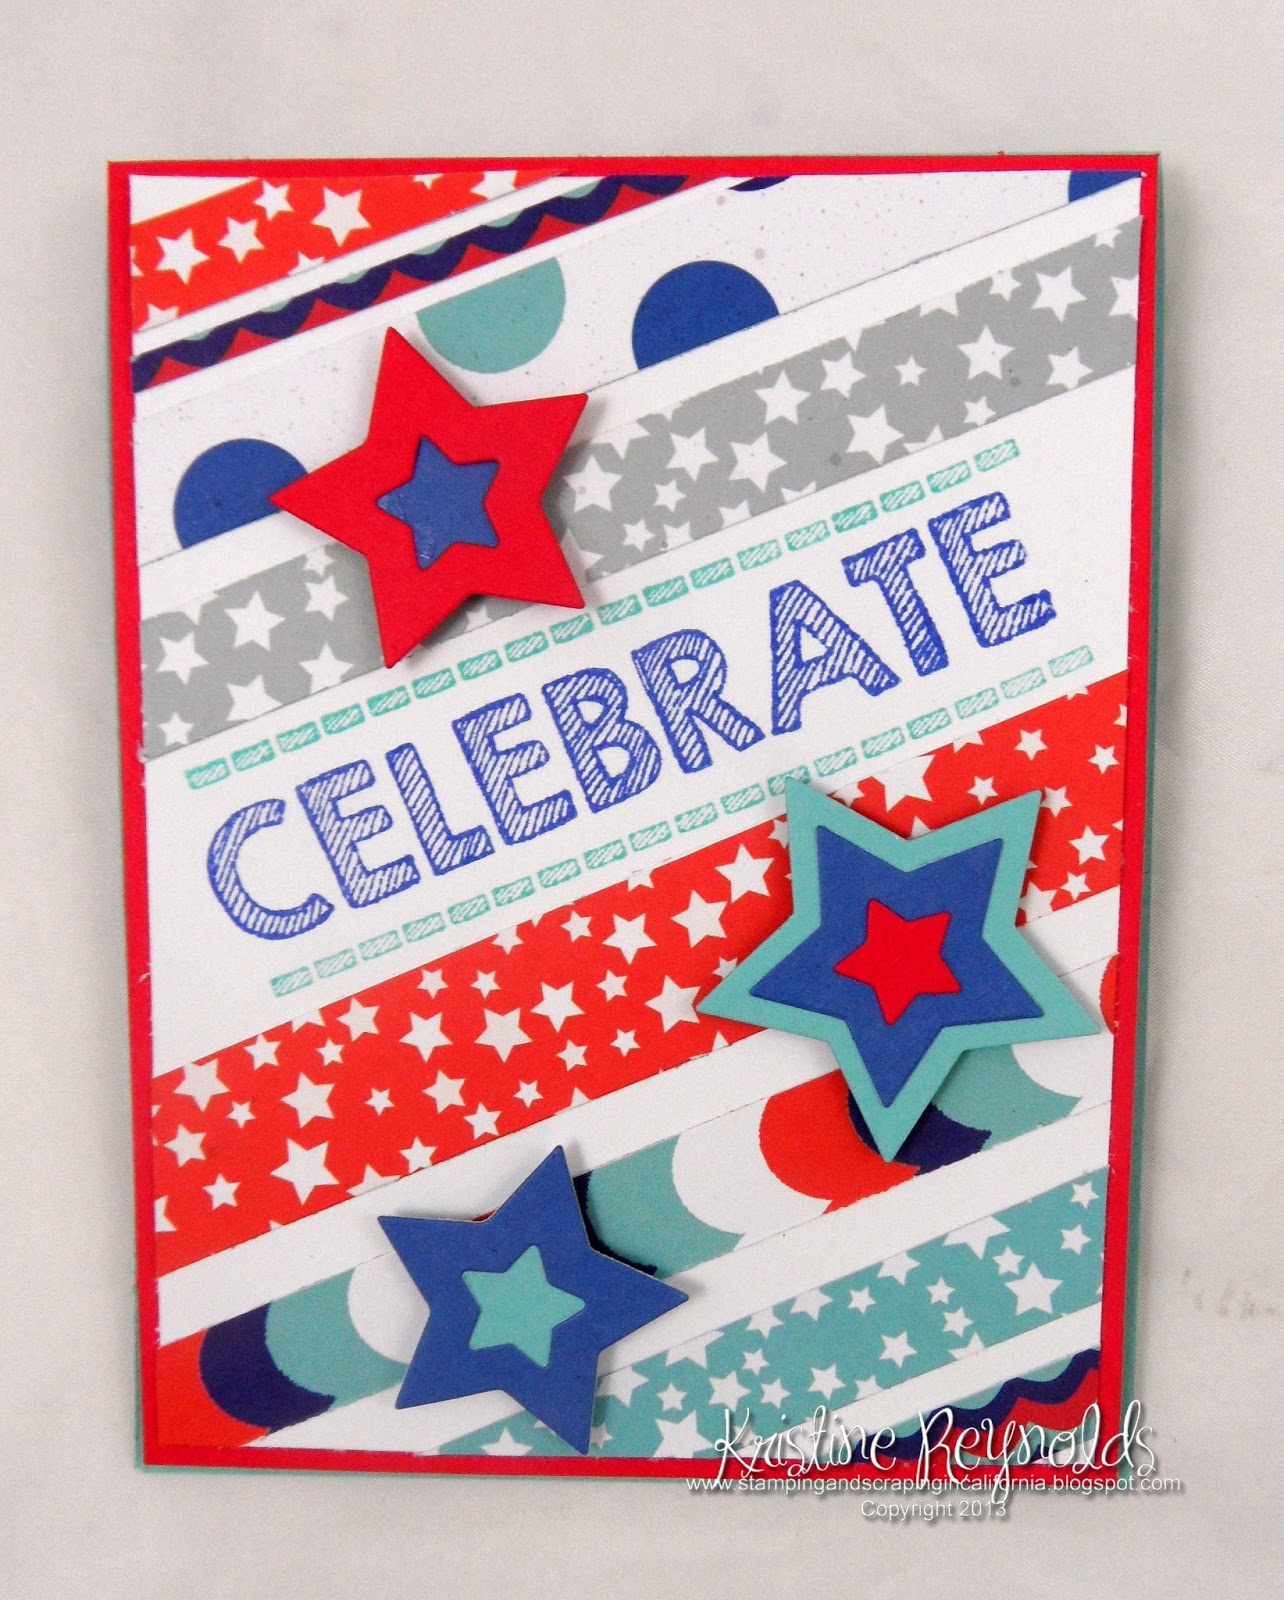 Stamping & Scrapping In California: Celebrate